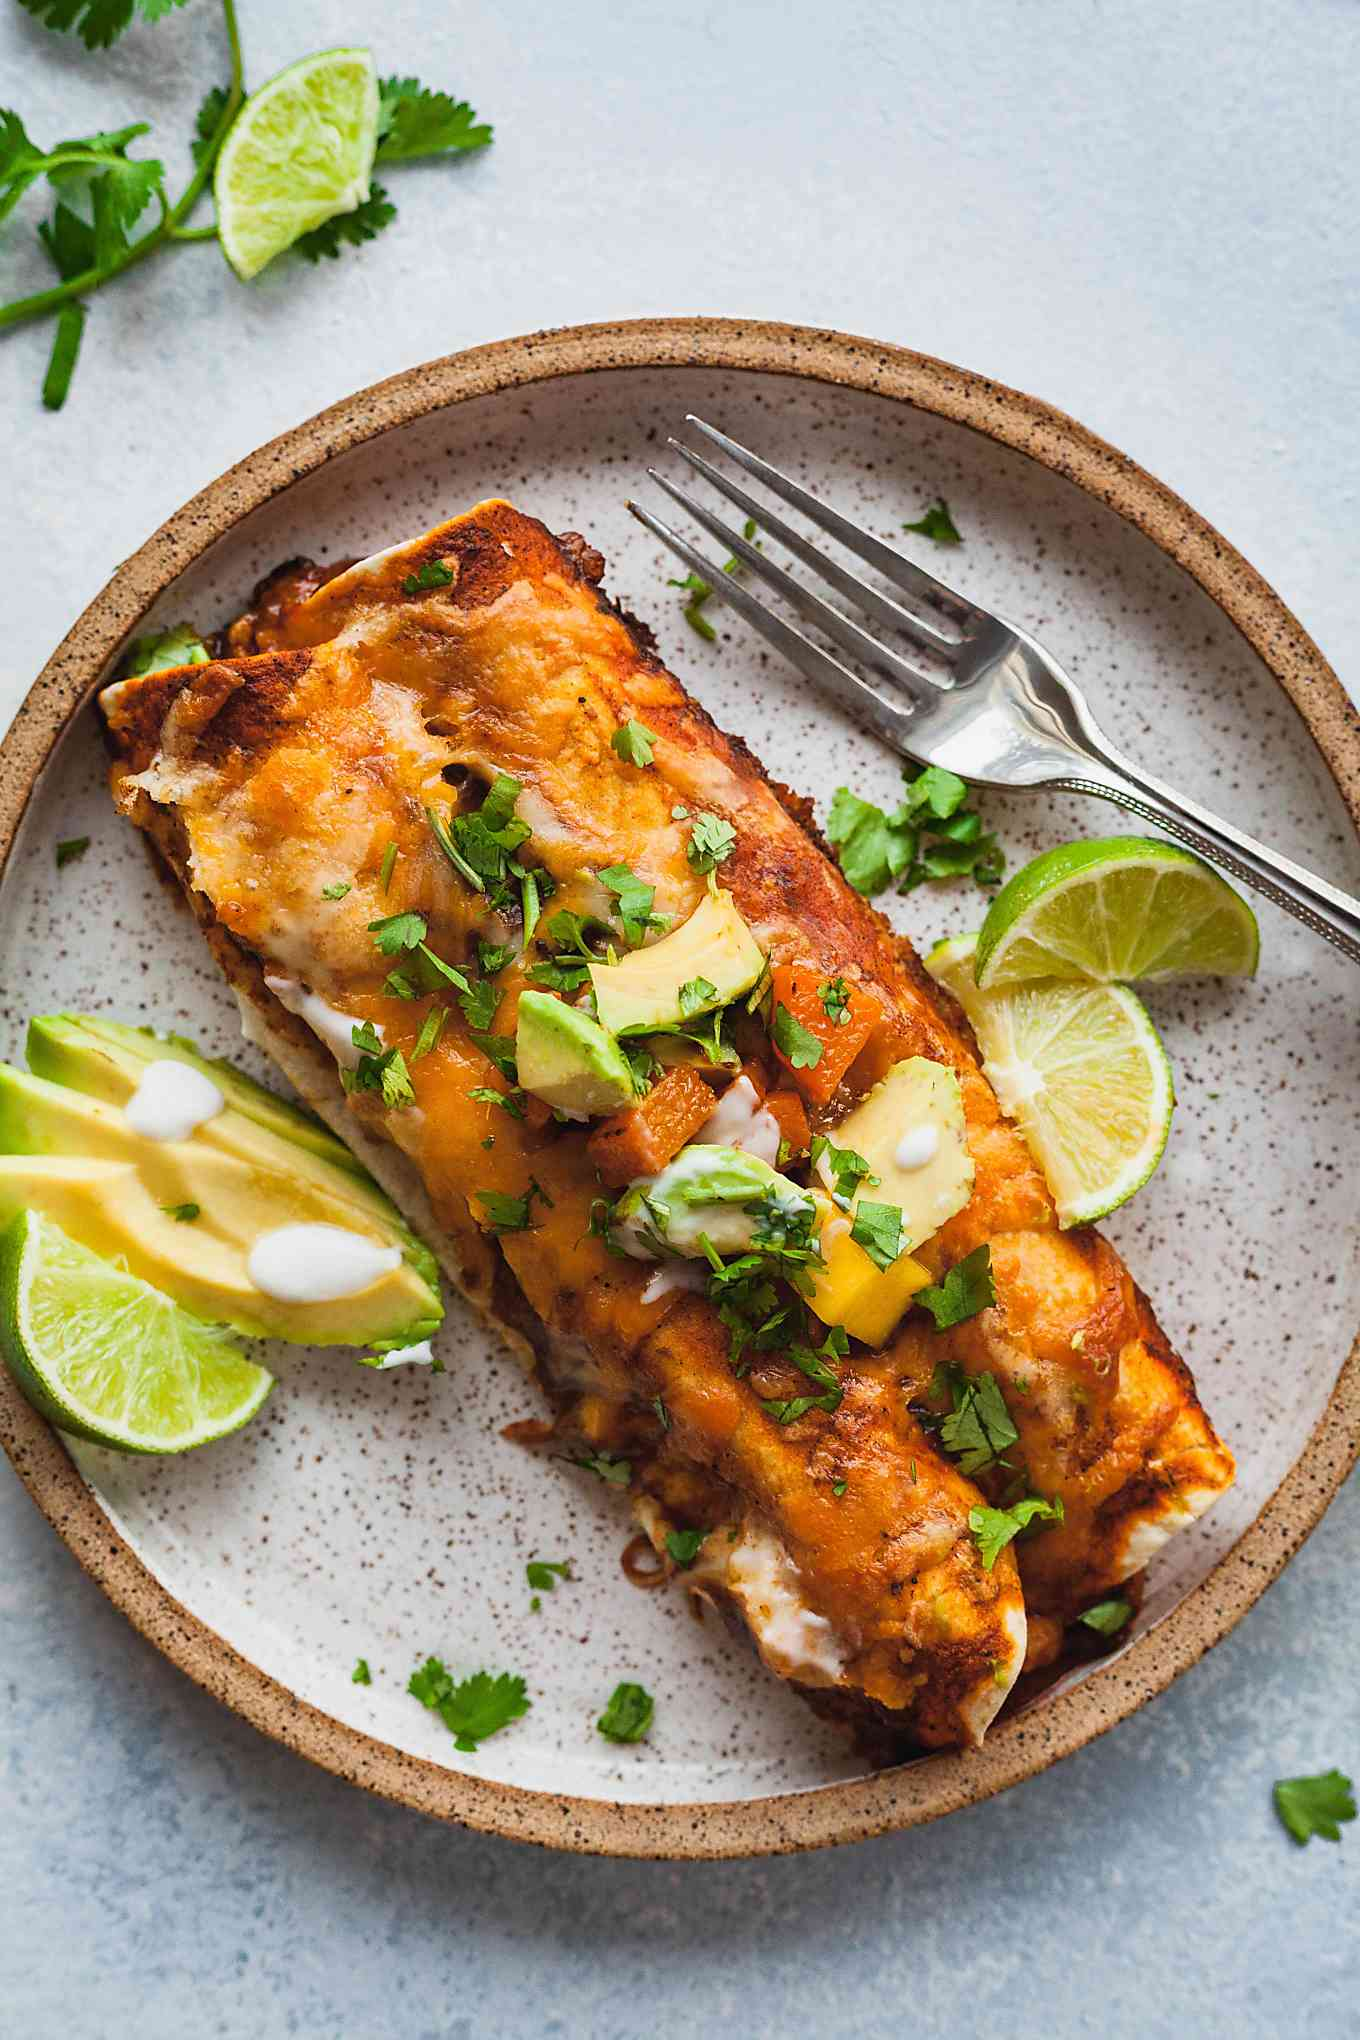 vegetarian enchiladas on a rustic plate with avocado and lime